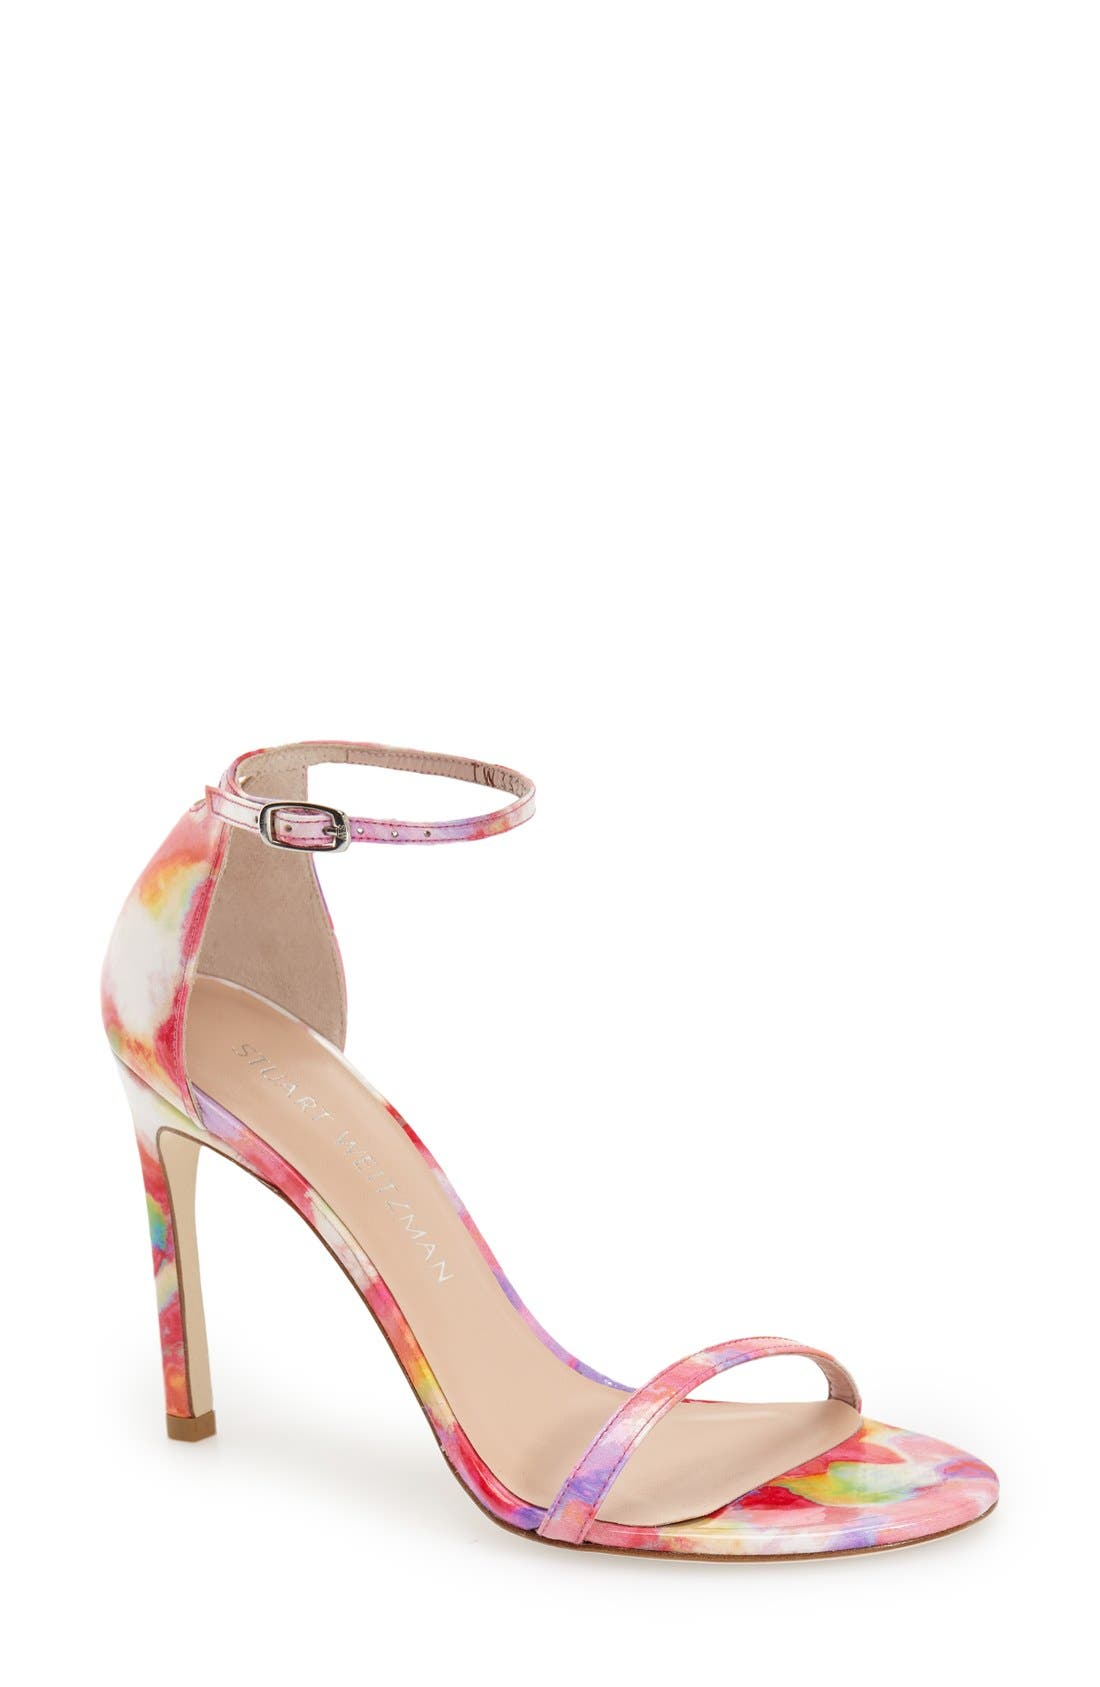 Nudistsong Ankle Strap Sandal,                             Main thumbnail 35, color,